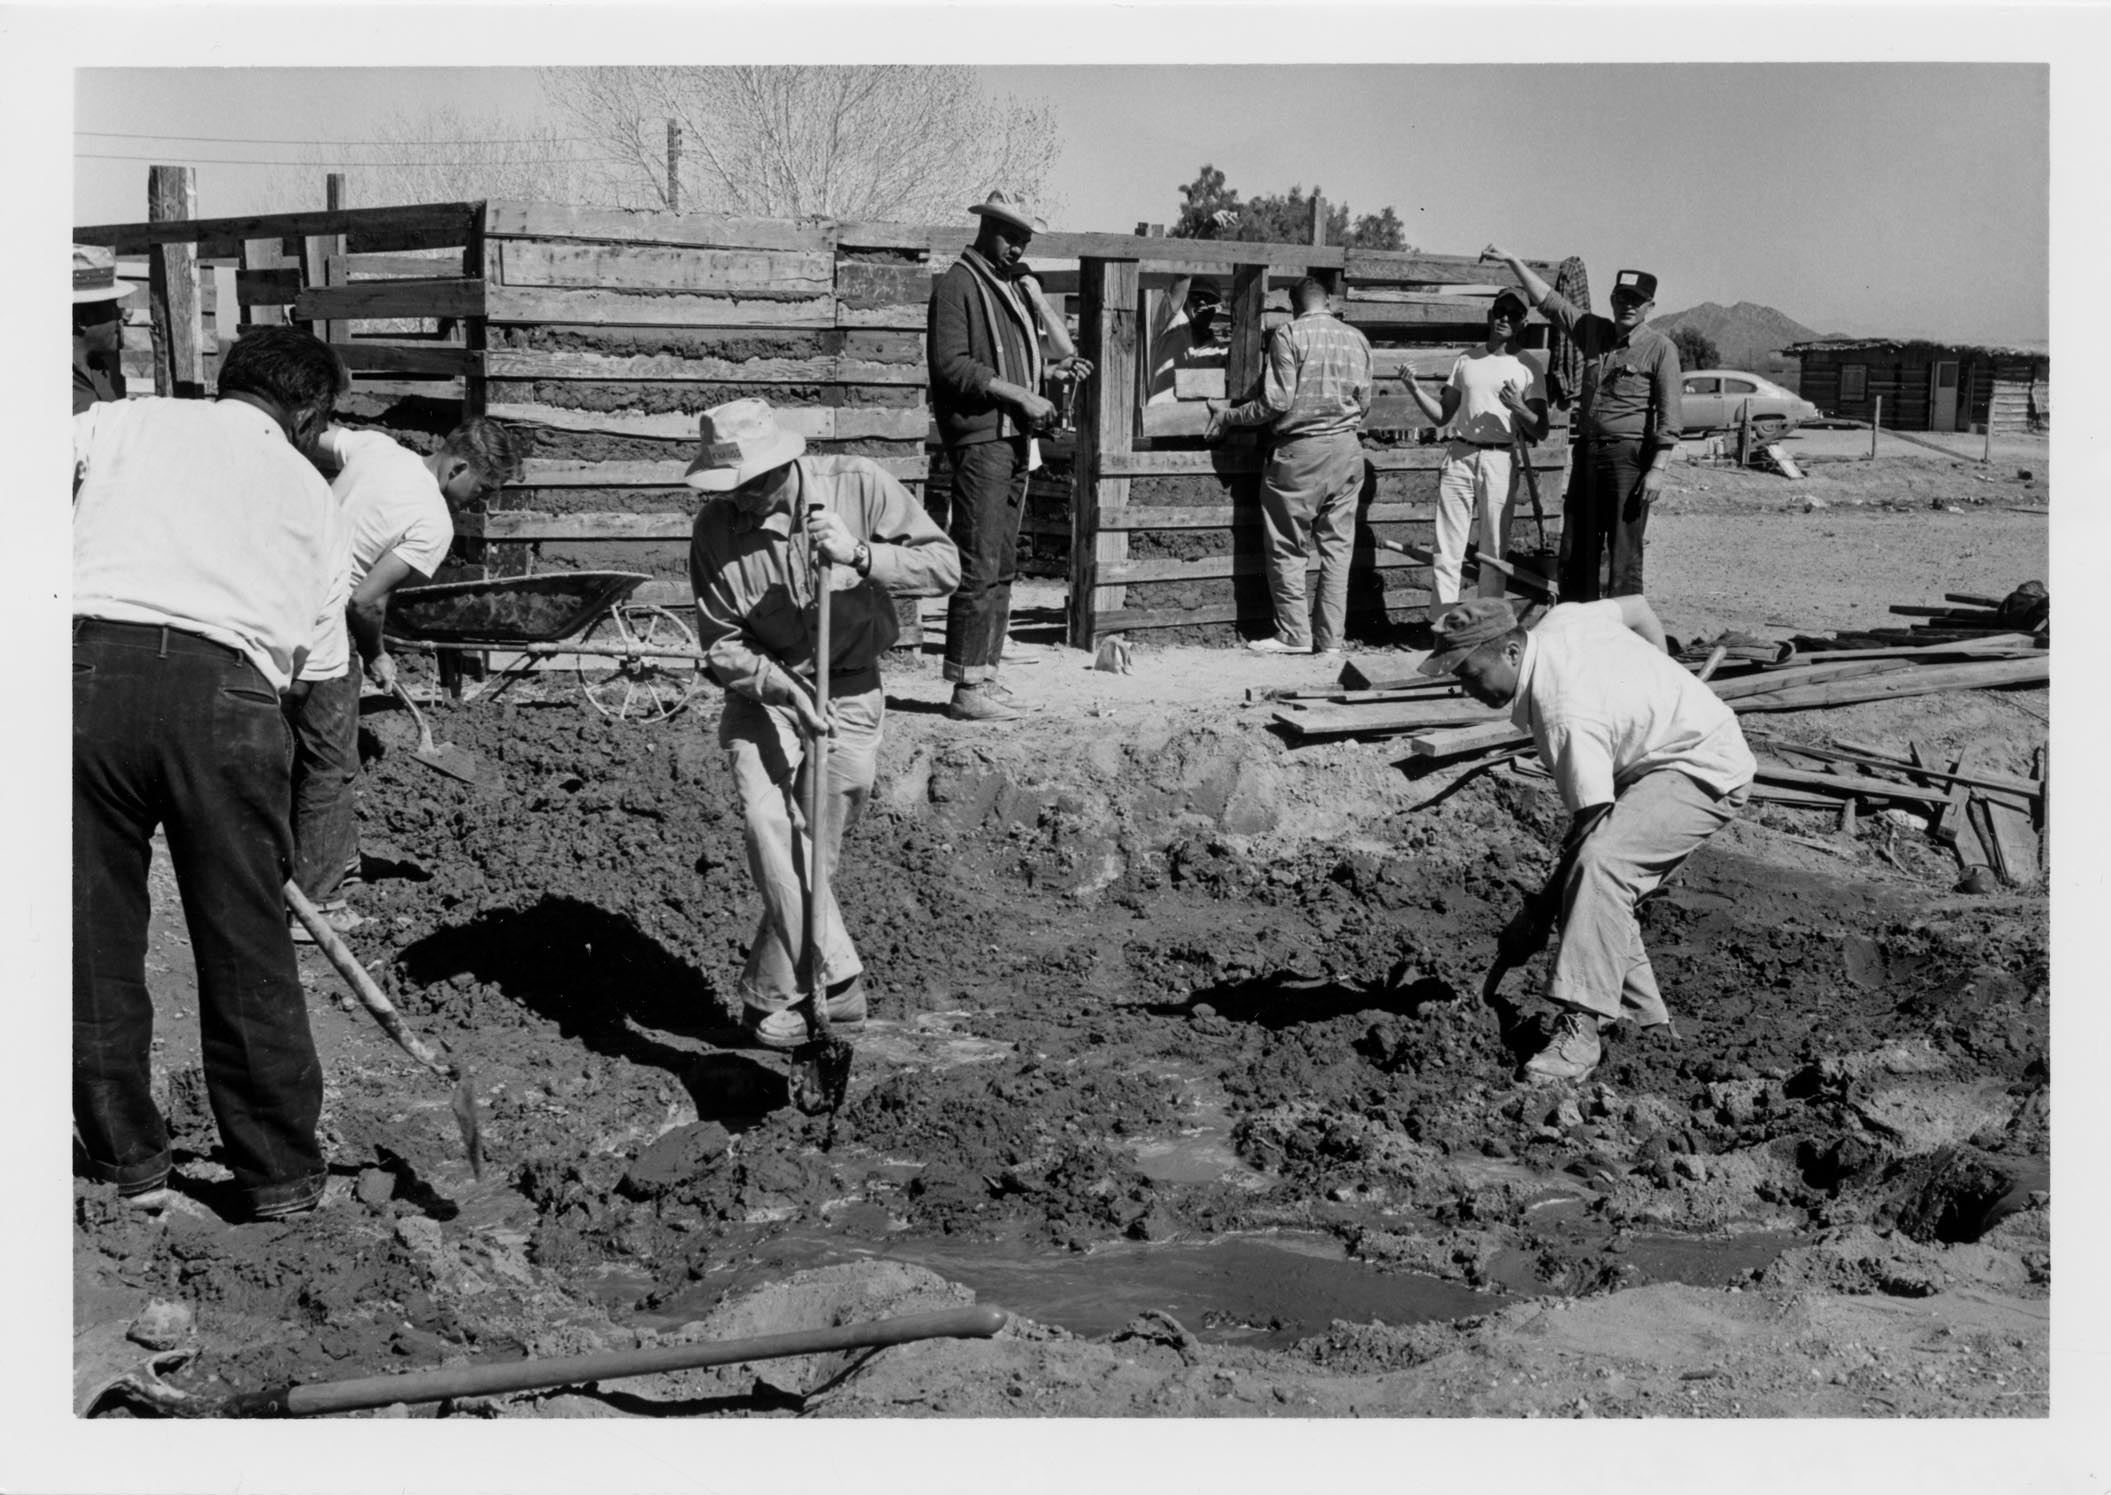 Black and white photo of three men dig in dirt with shovels. Another group of men stand along a wooden fence in the background.